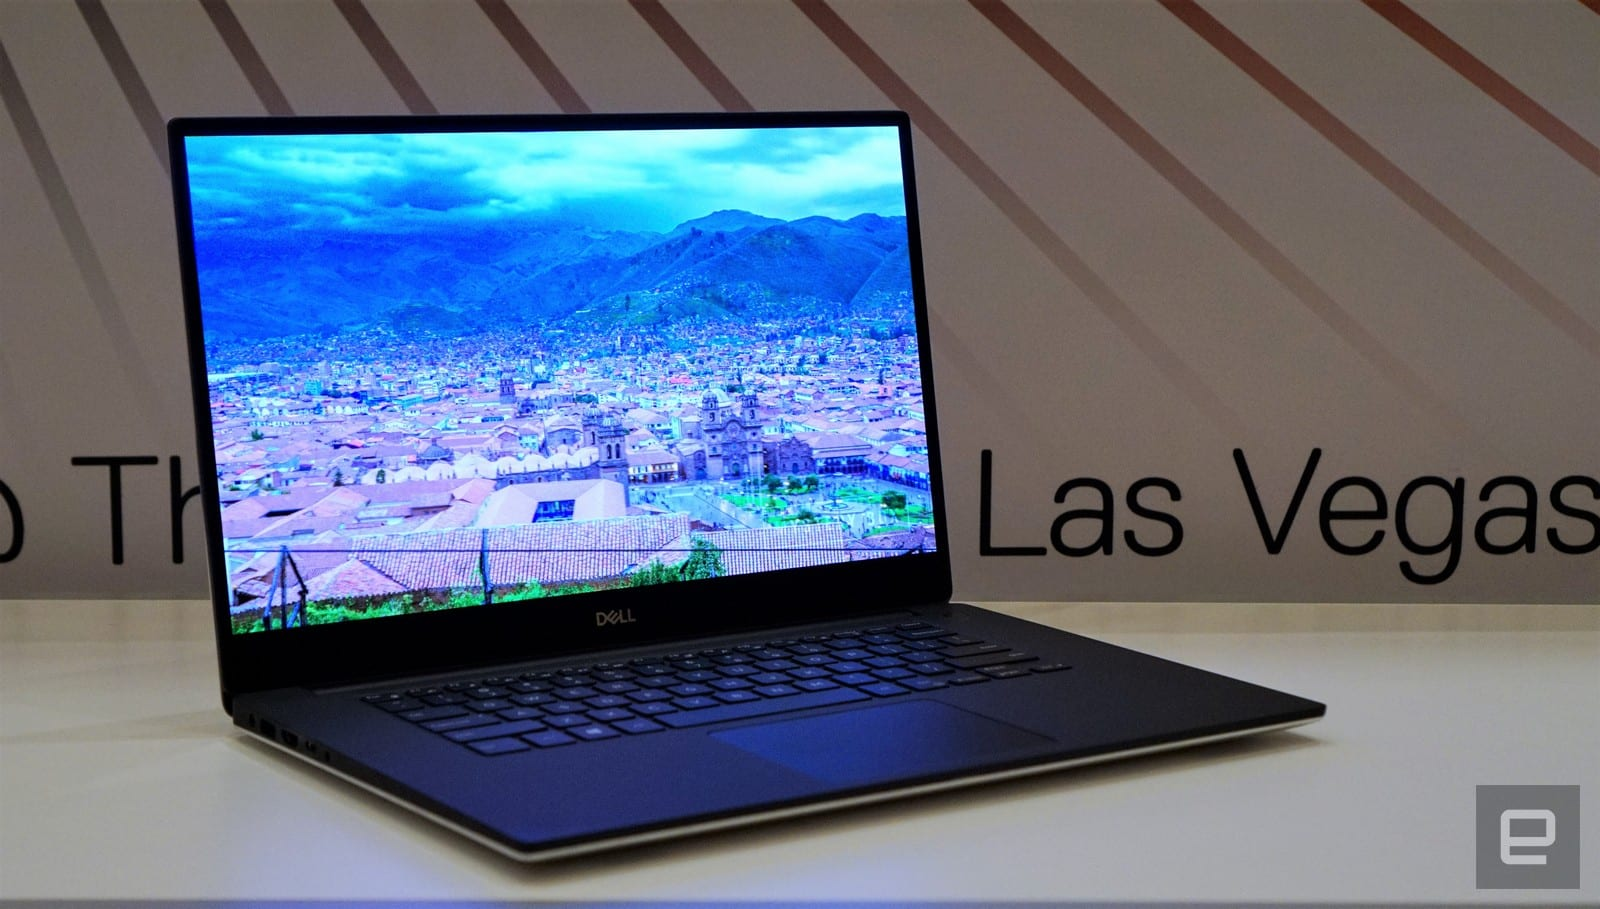 dell premier color xps 15 9570 - 28 images - dell premier